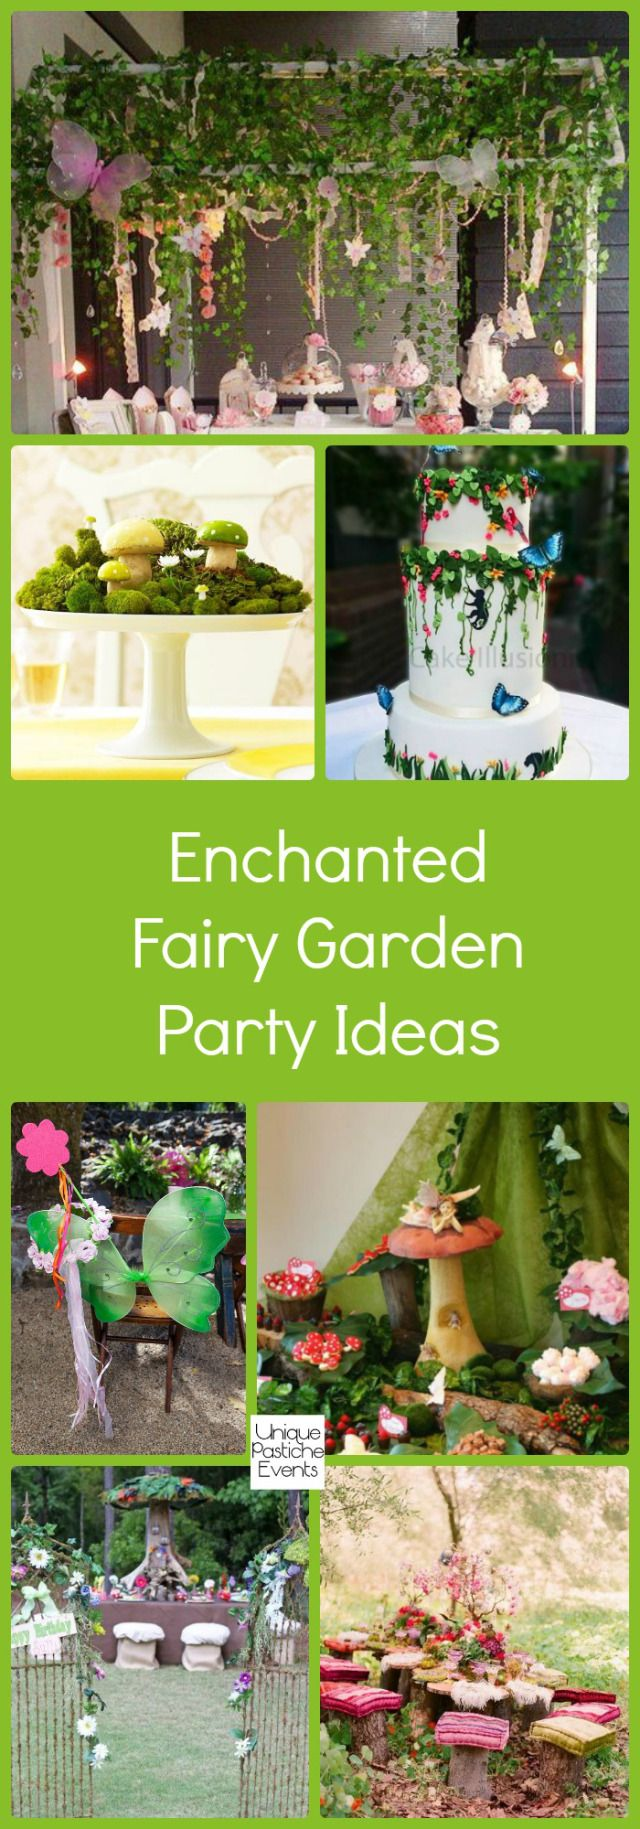 Enchanted Fairy Garden Party Ideas #IdeaBoard #InspirationBoard